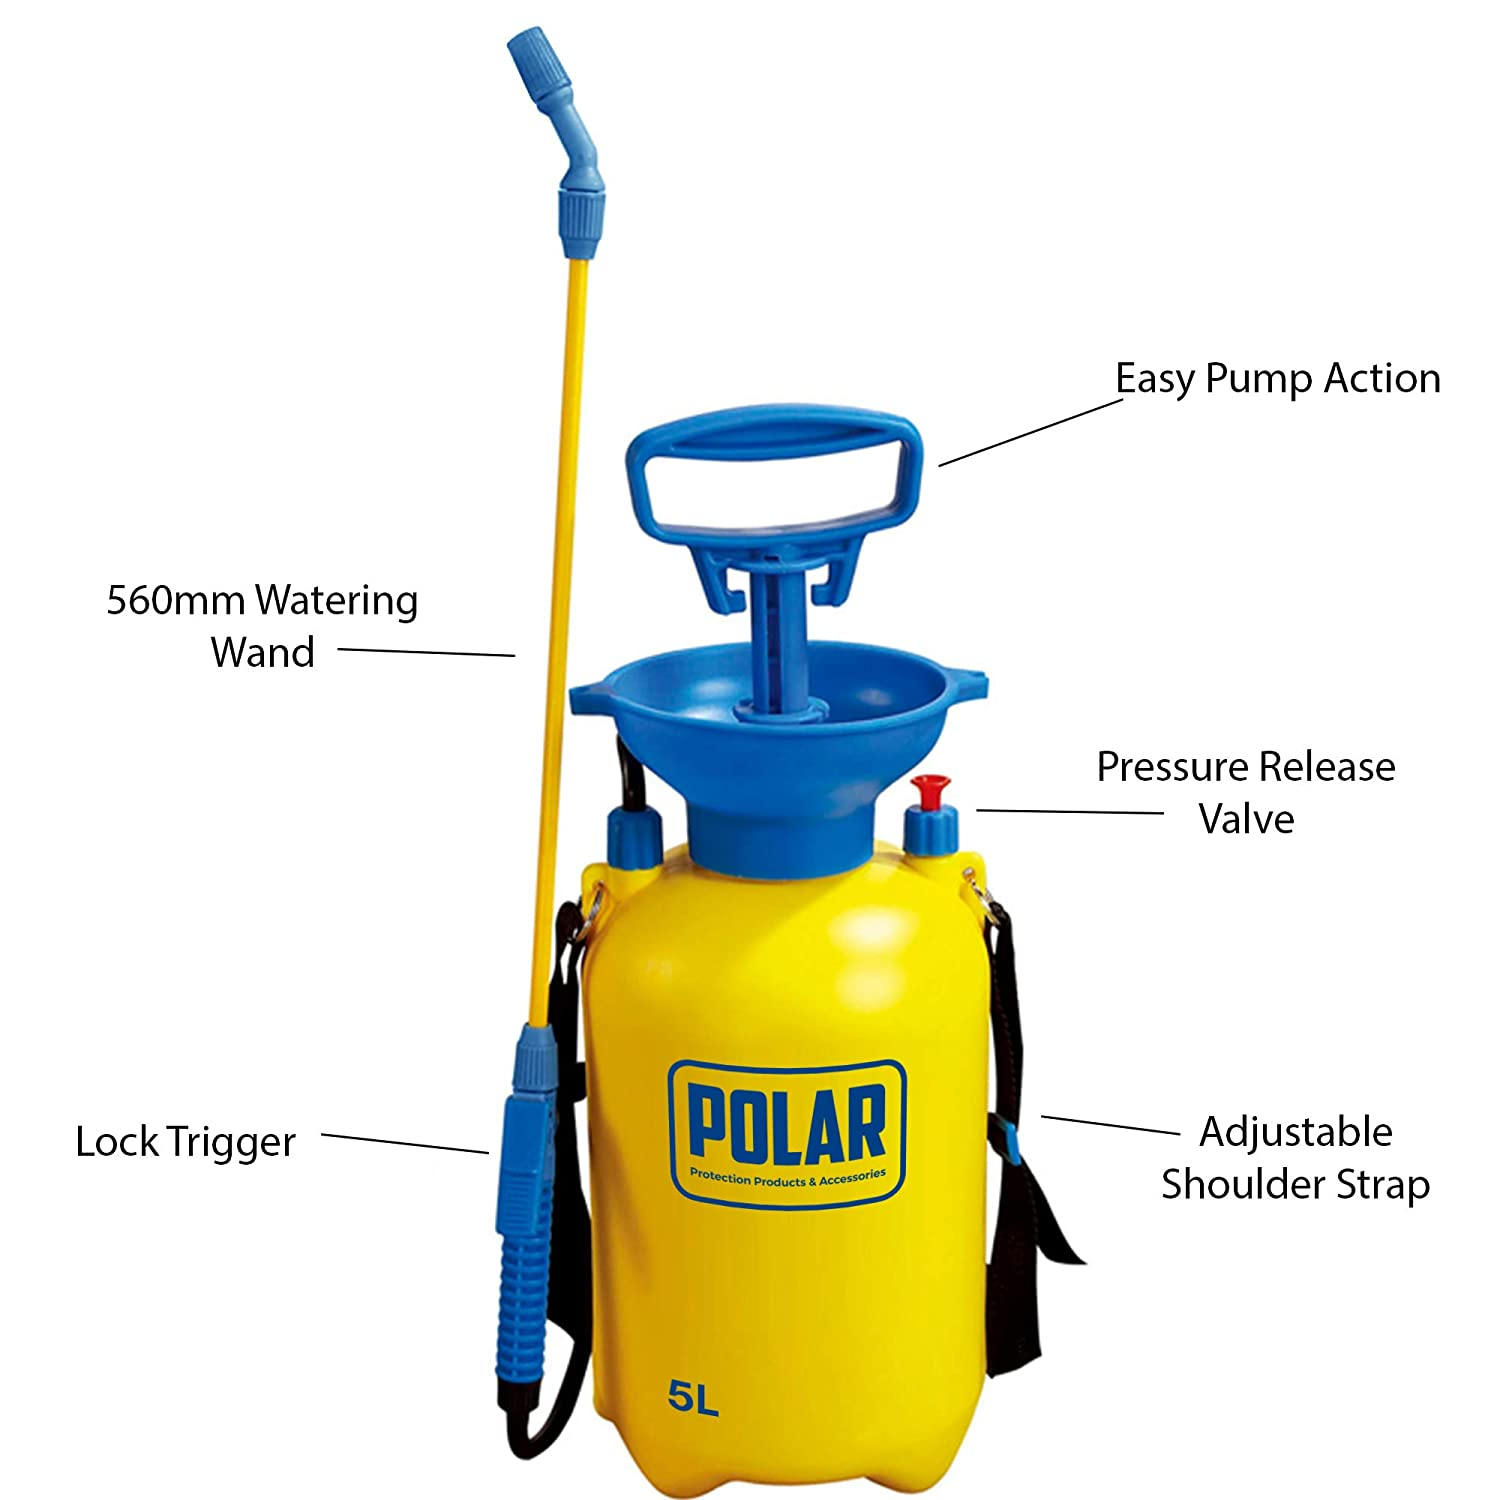 Herbicides and Fungicides Polar Premium 5 Litre Pump Action Pressure Garden Sprayer with Safety Valve and Shoulder Strap Pesticides Use with Weed Killer Chemical Sprayer